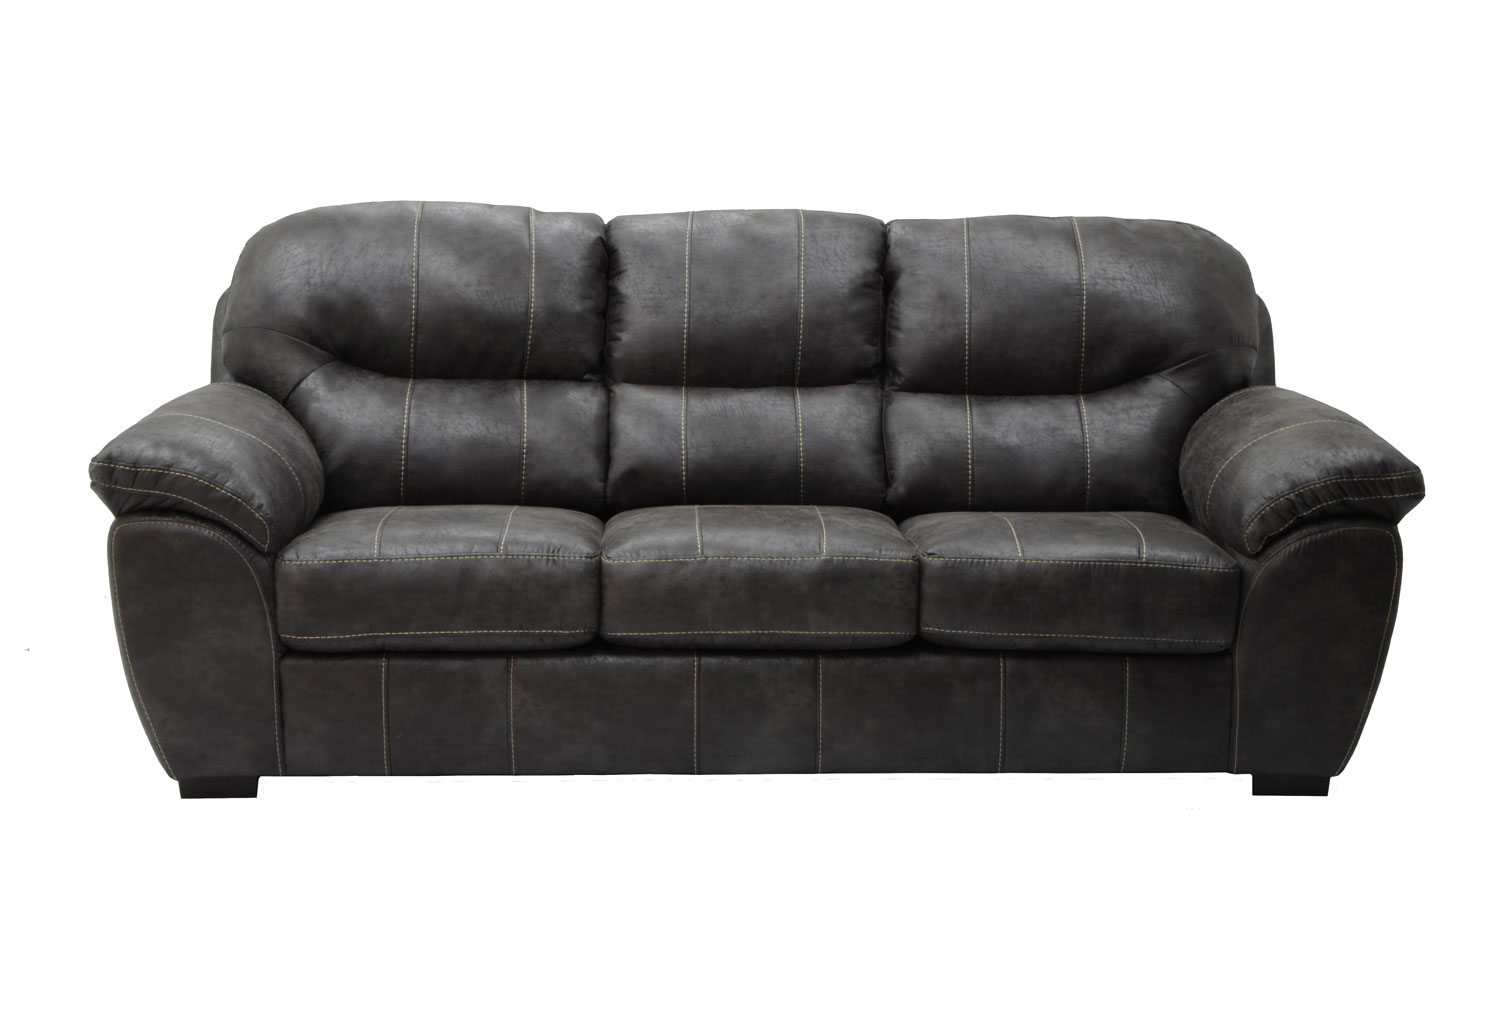 Ordinaire Jackson Grant Bonded Leather Queen Sleeper Sofa   Steel